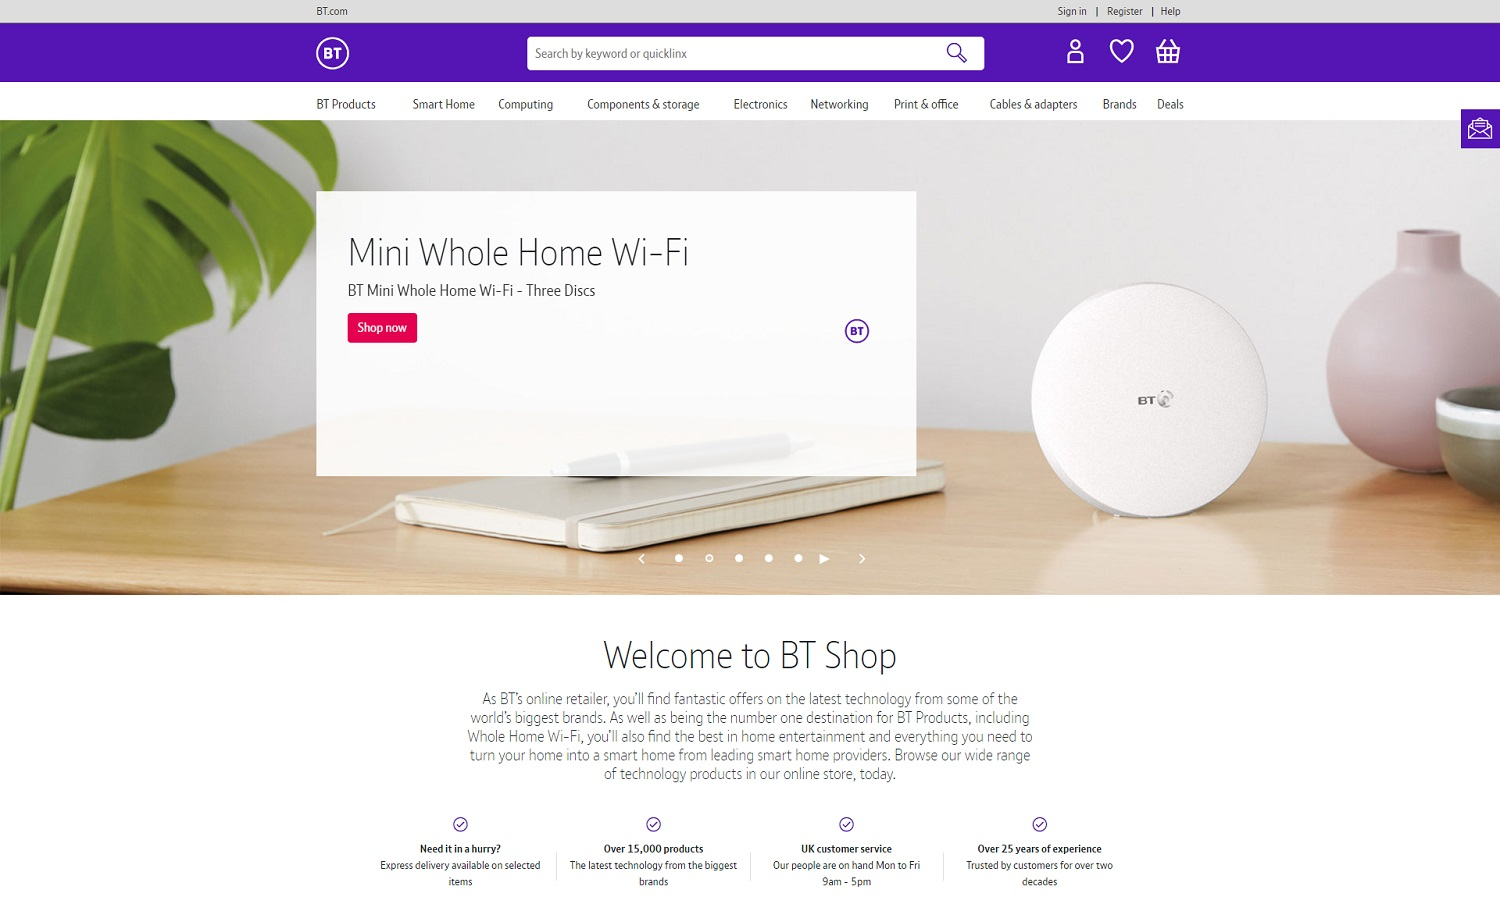 BT Shop Discount Codes, Sales, Cashback Offers & Deals